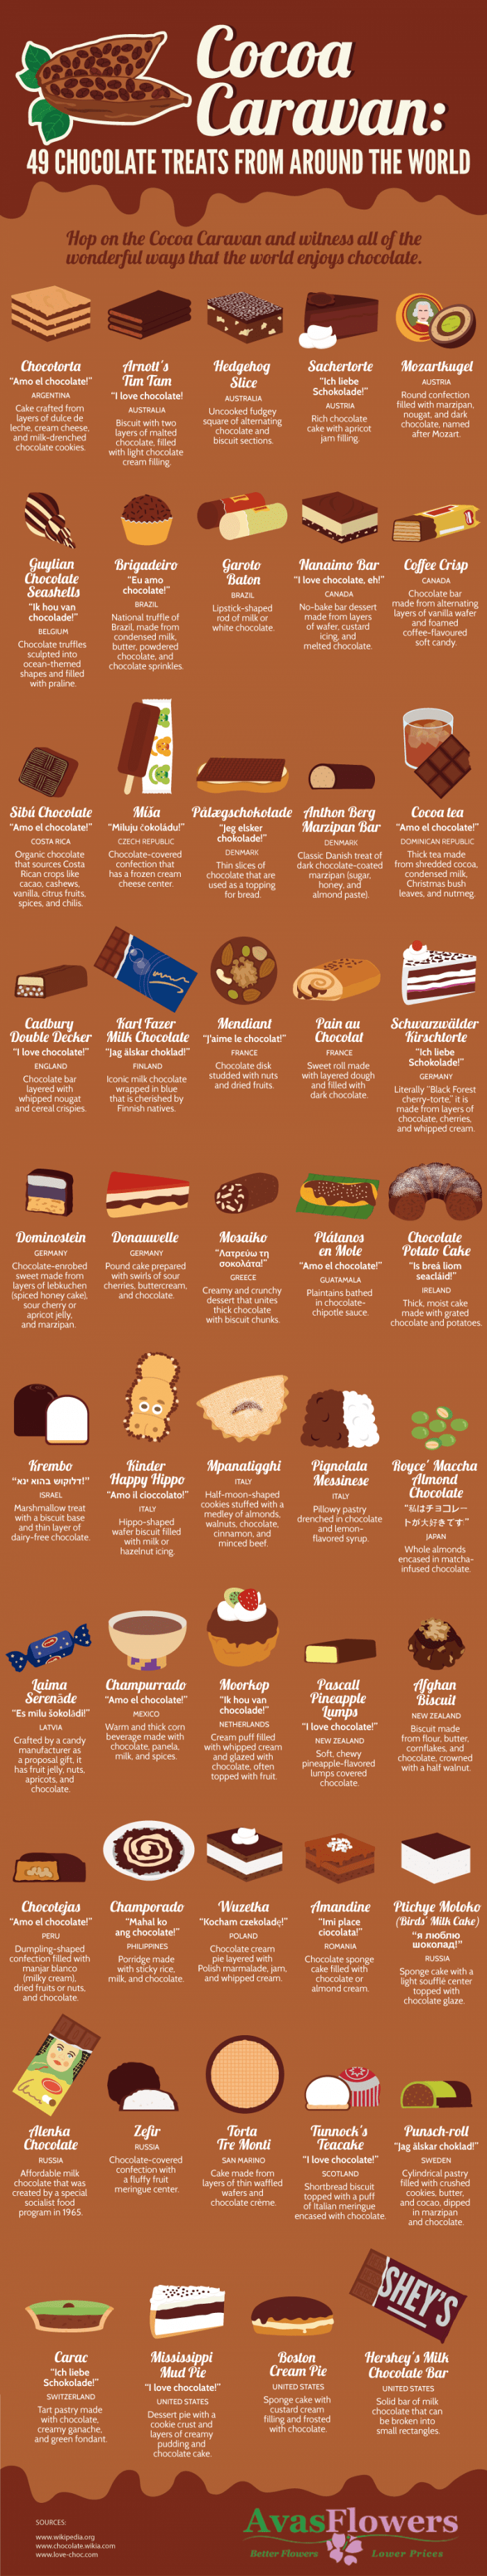 49 Chocolate Treats